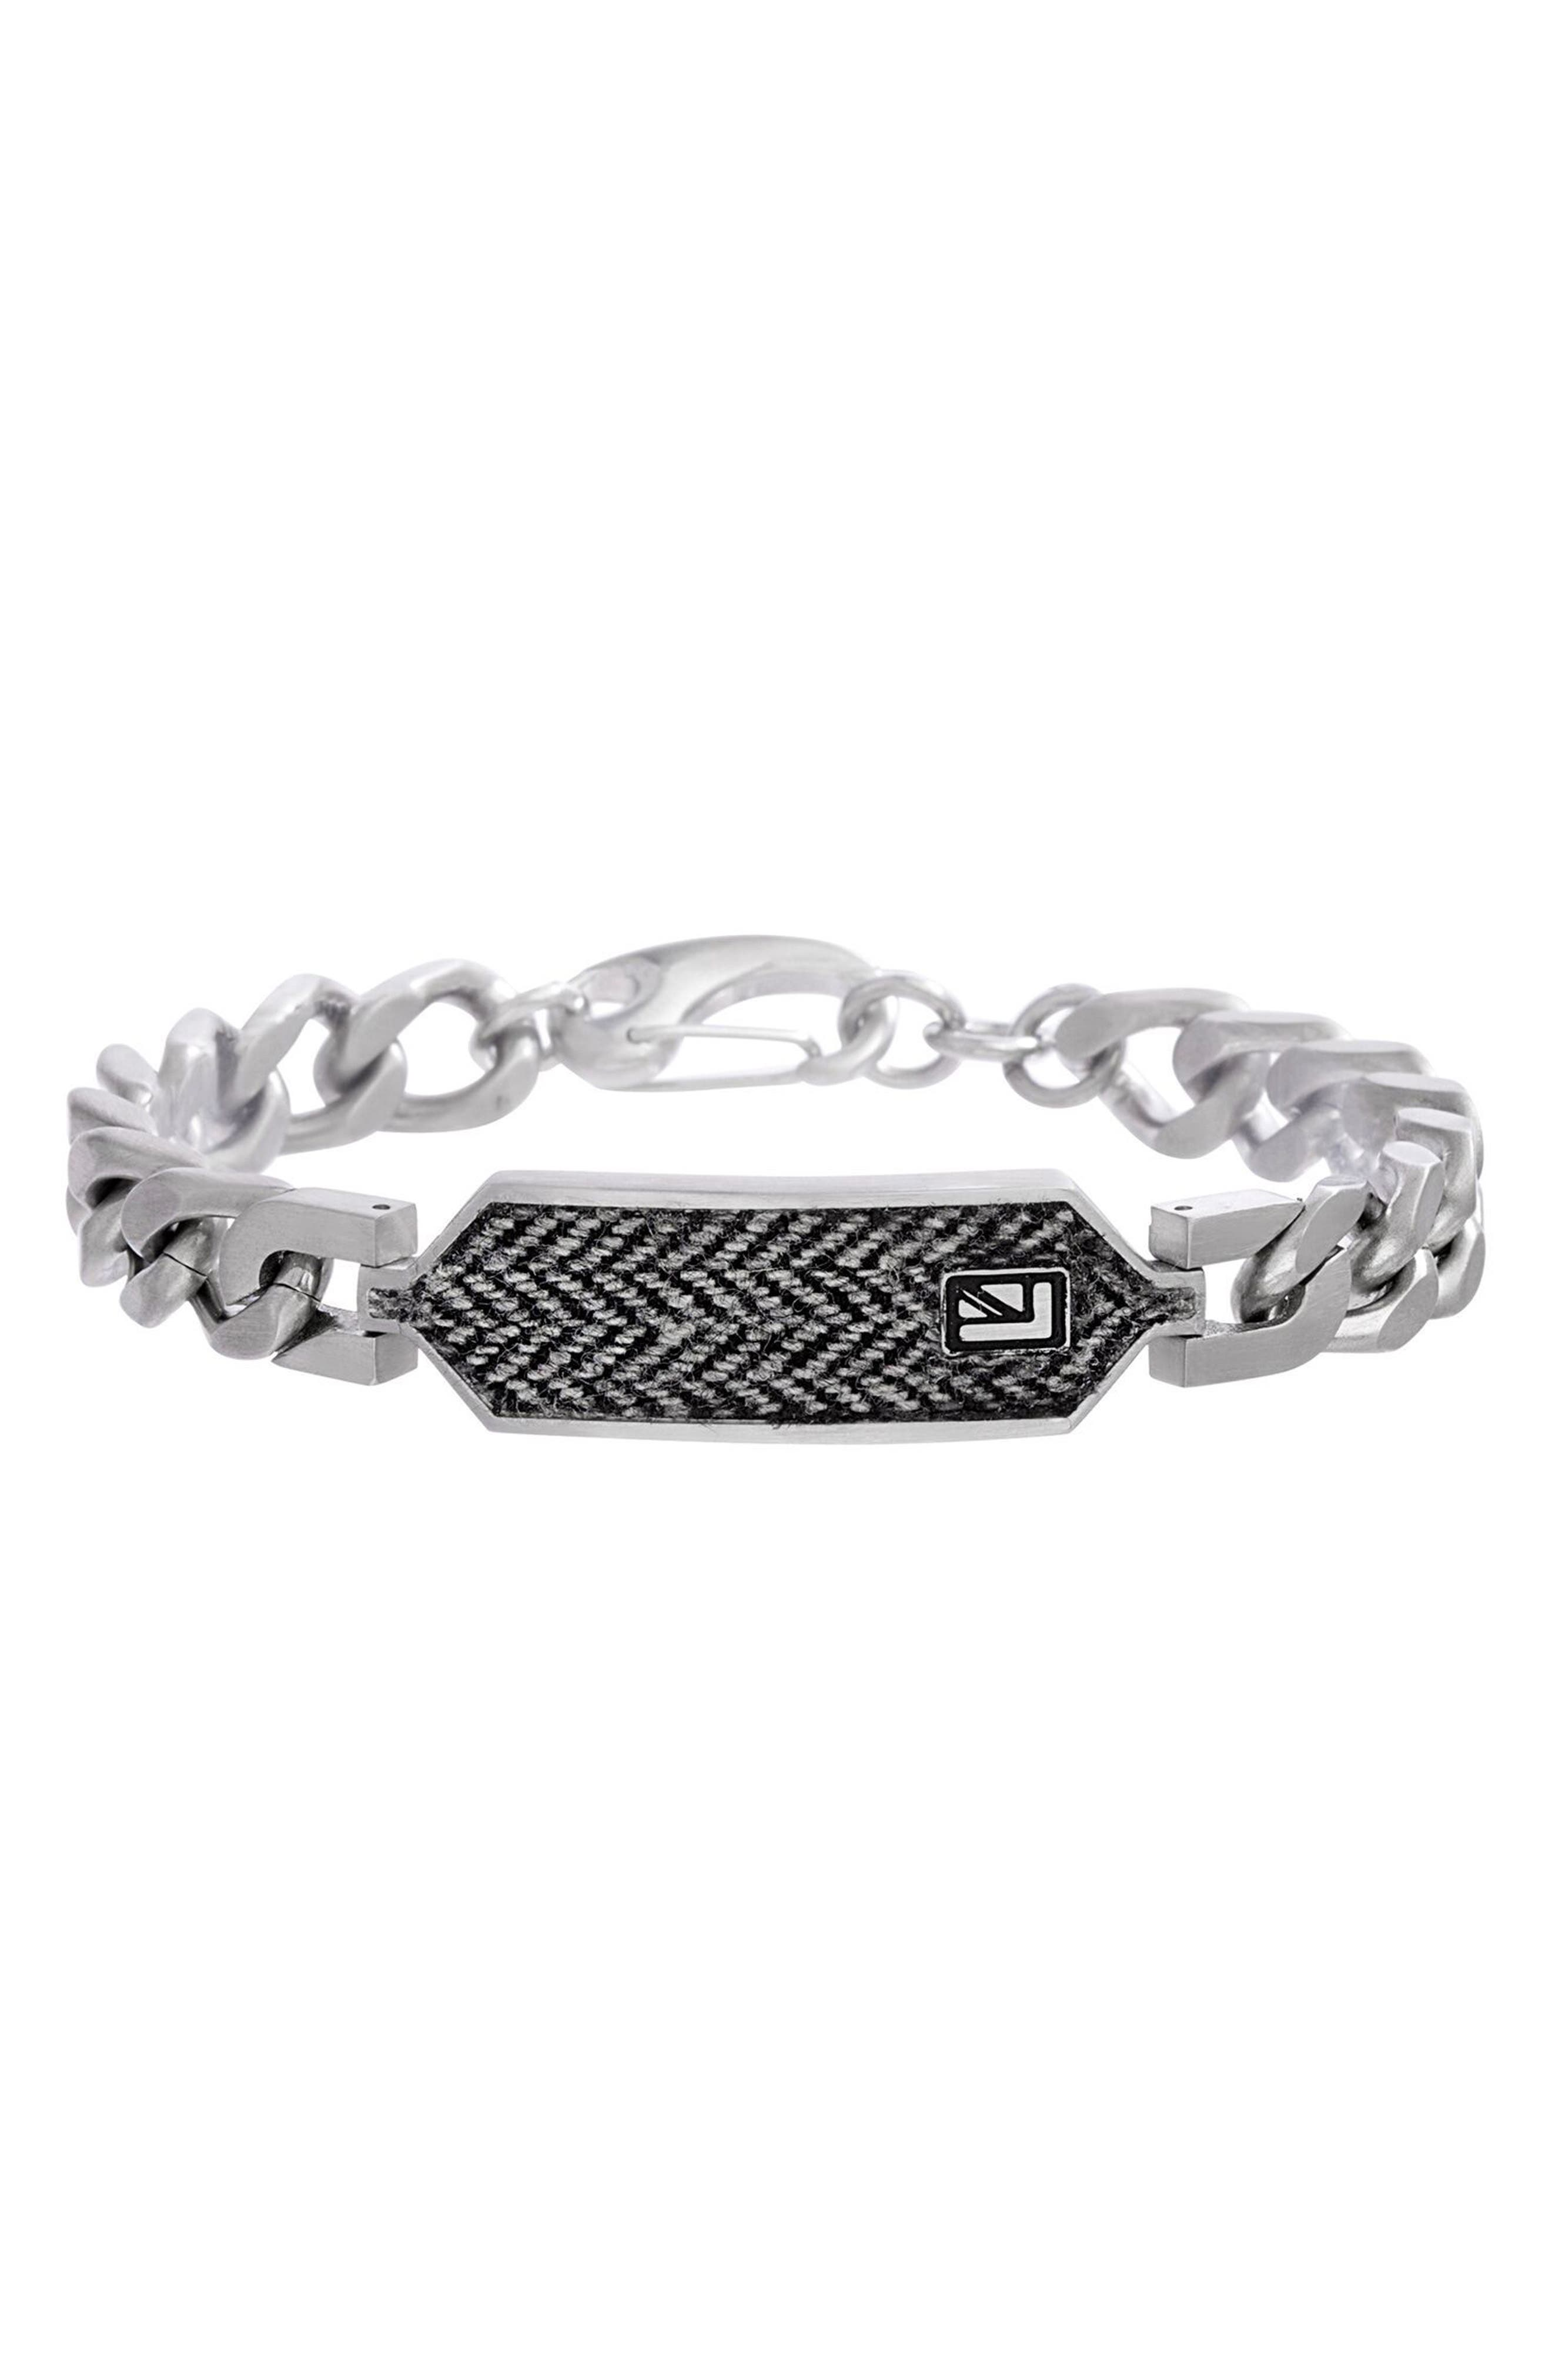 ID Plate Chain Bracelet,                         Main,                         color, Silver